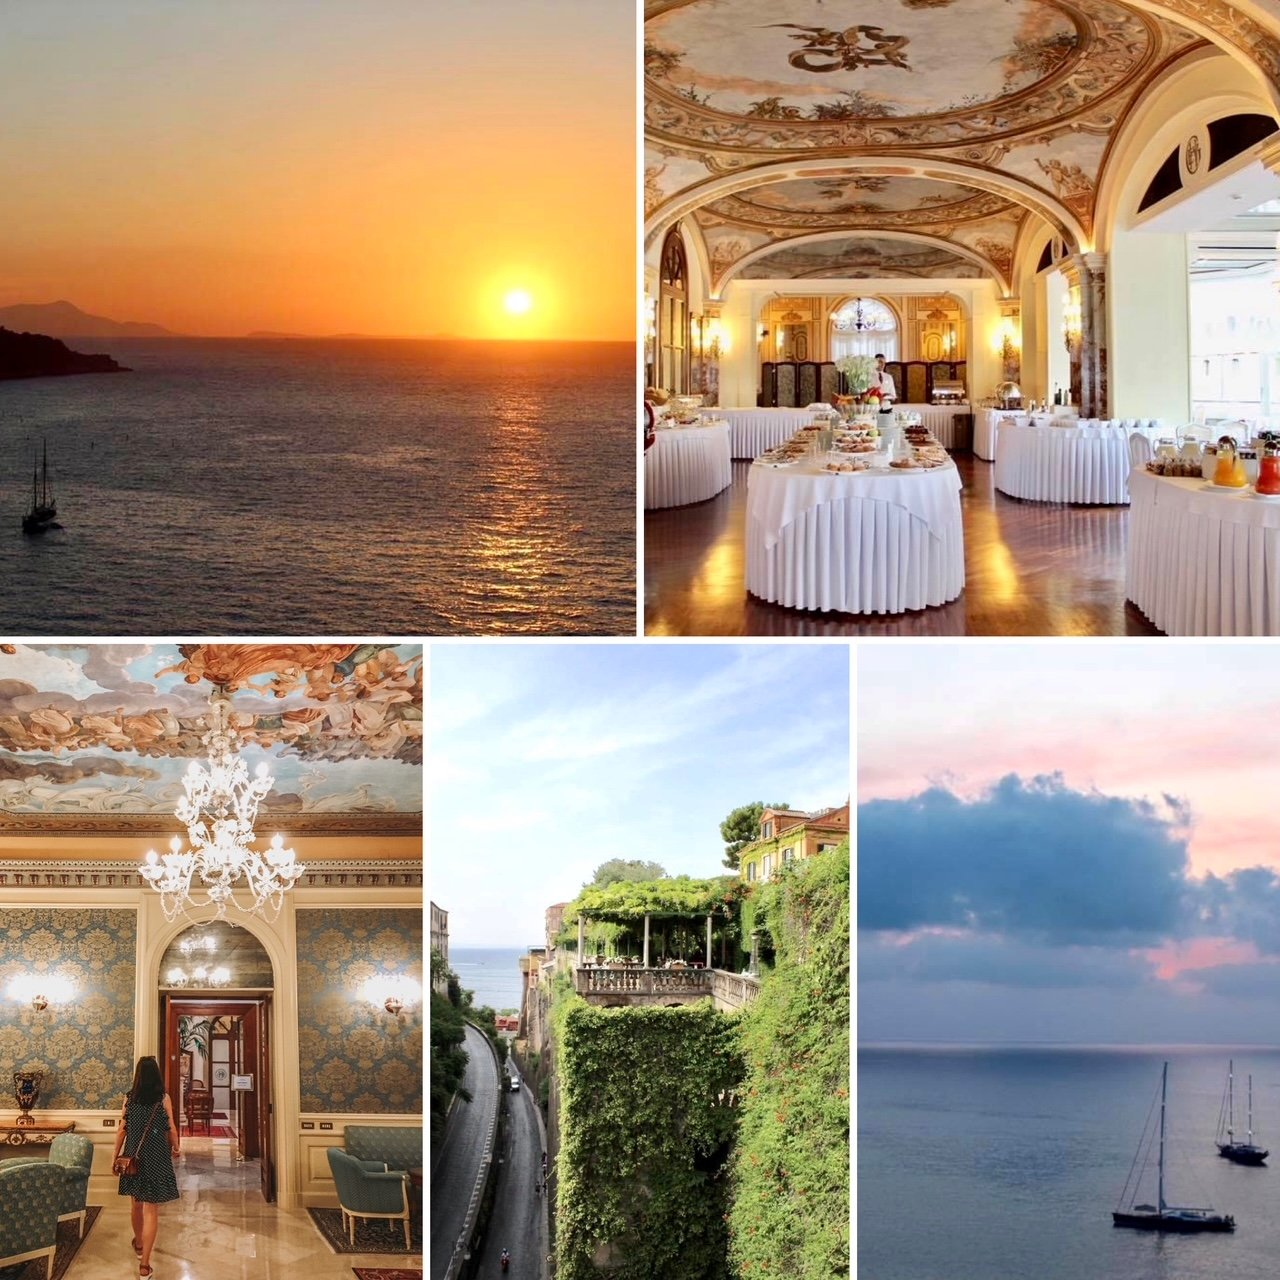 Views of the Grand Hotel Excelsior and sunset